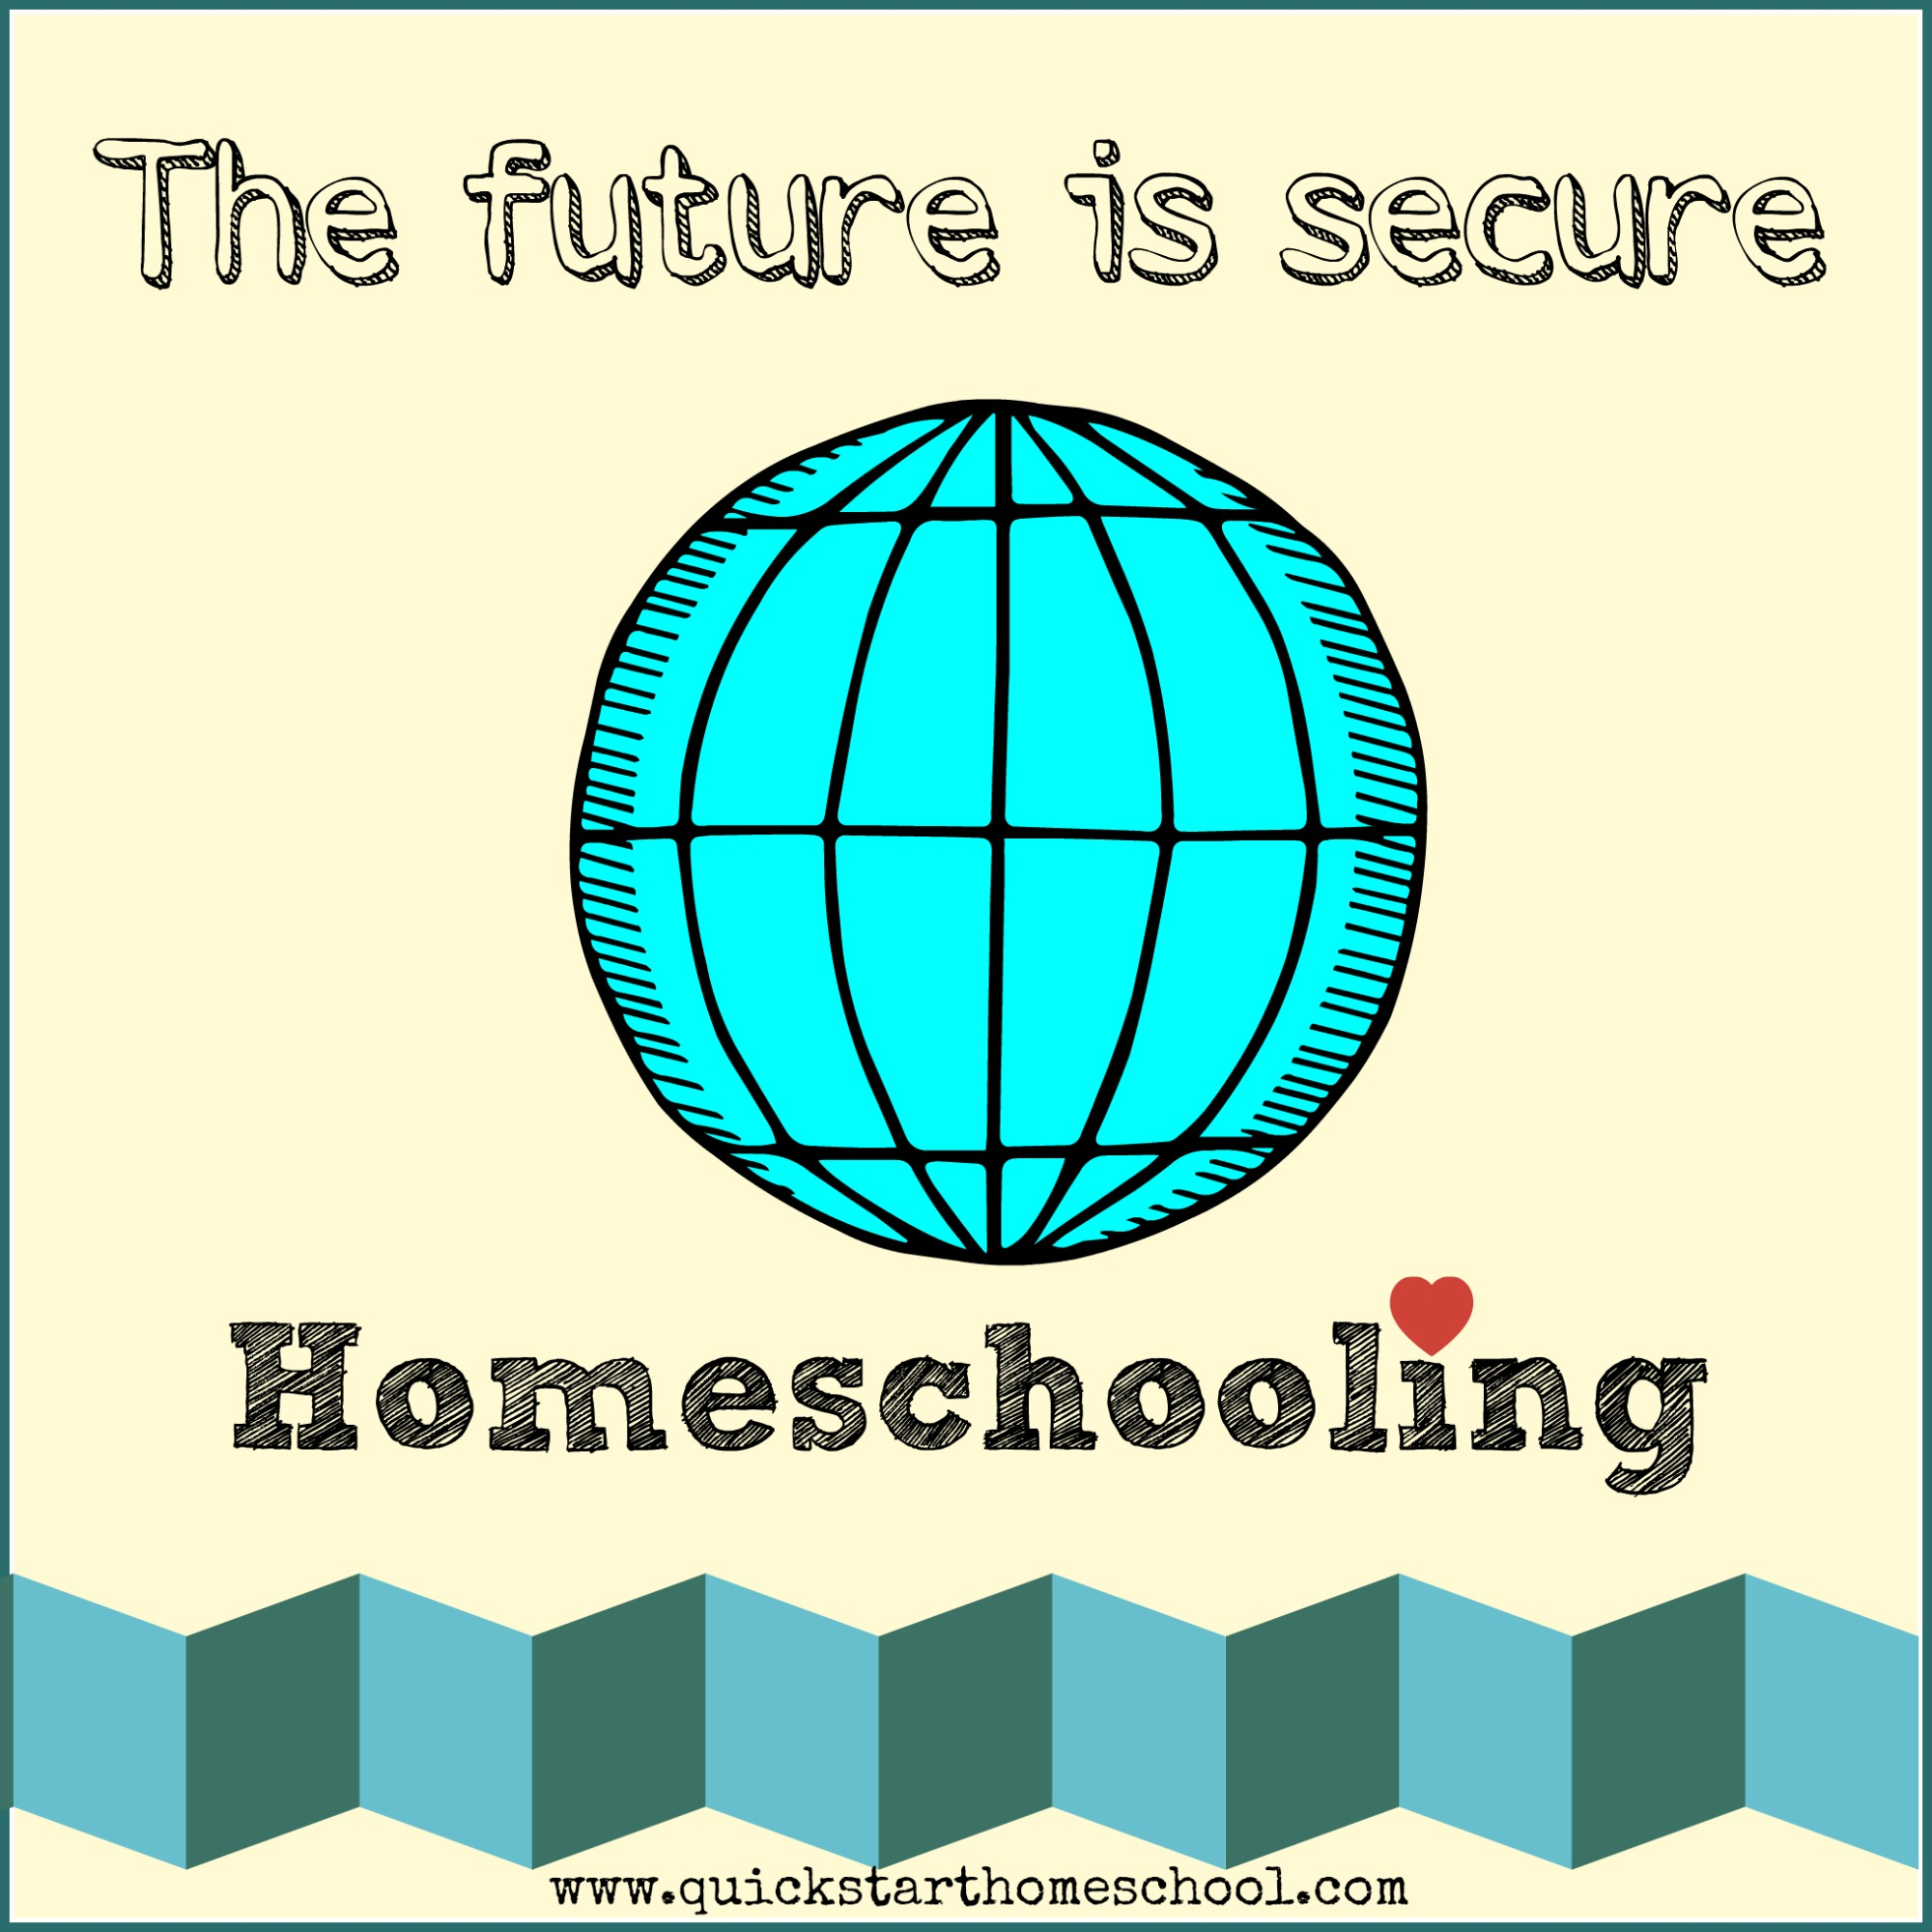 The future is secure {Quick Start Homeschool}